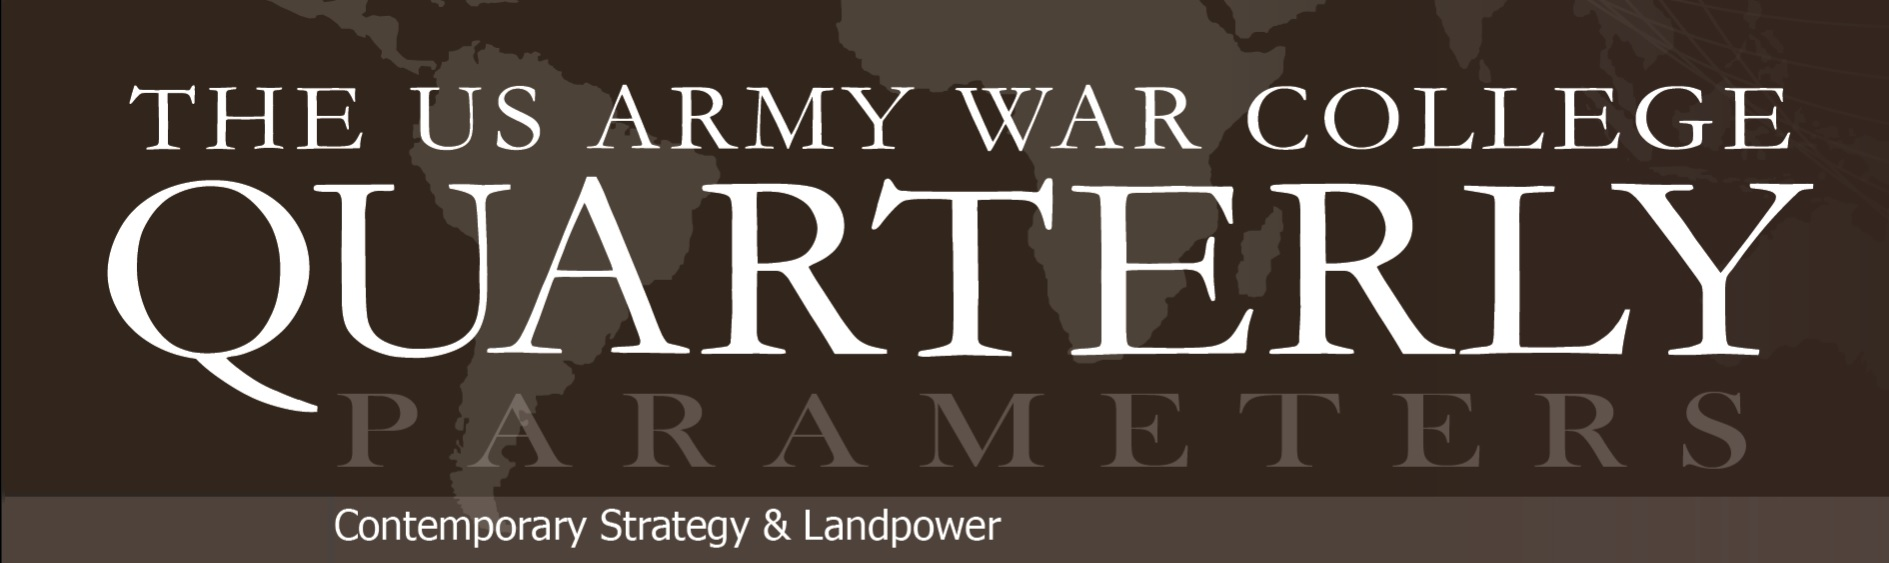 The US Army War College Quarterly: Parameters